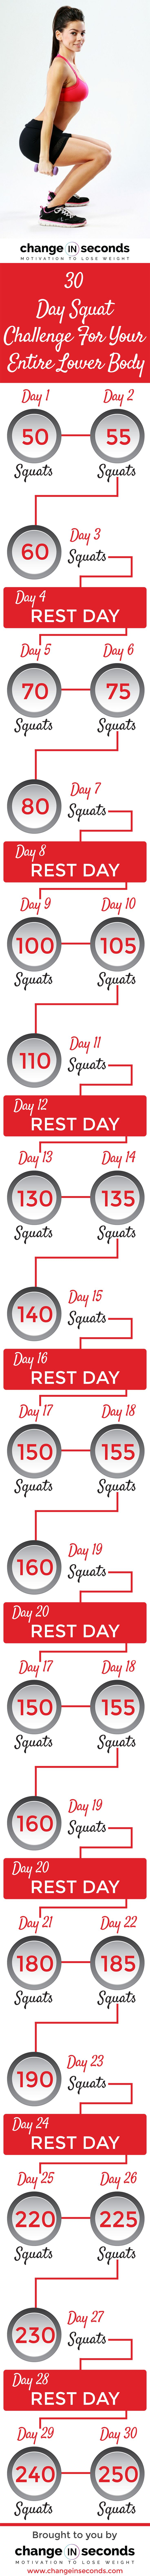 30 Day Squat Challenge http://www.changeinseconds.com/30-day-squat-challenge-for-your-entire-lower-body/